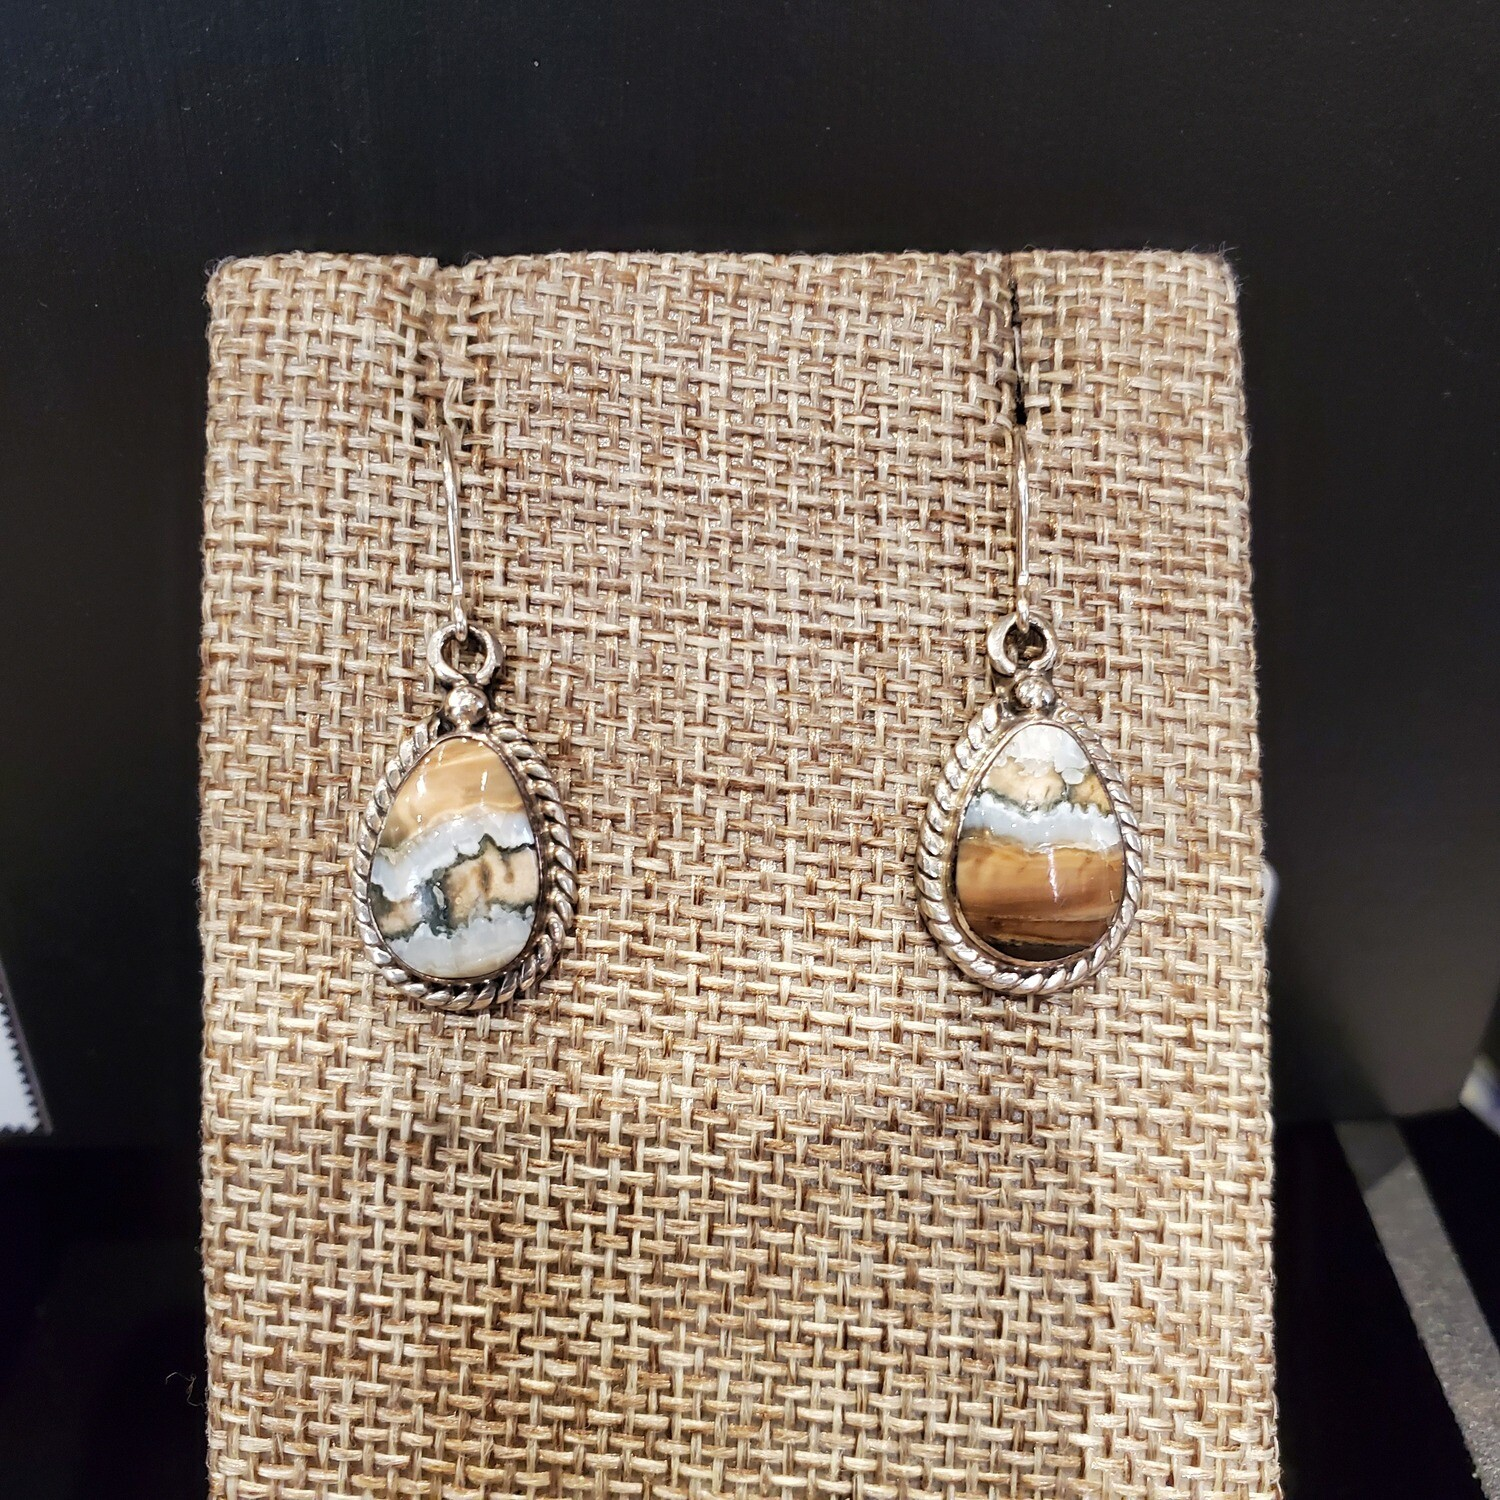 Petit Wooly Mammoth Tooth Earrings